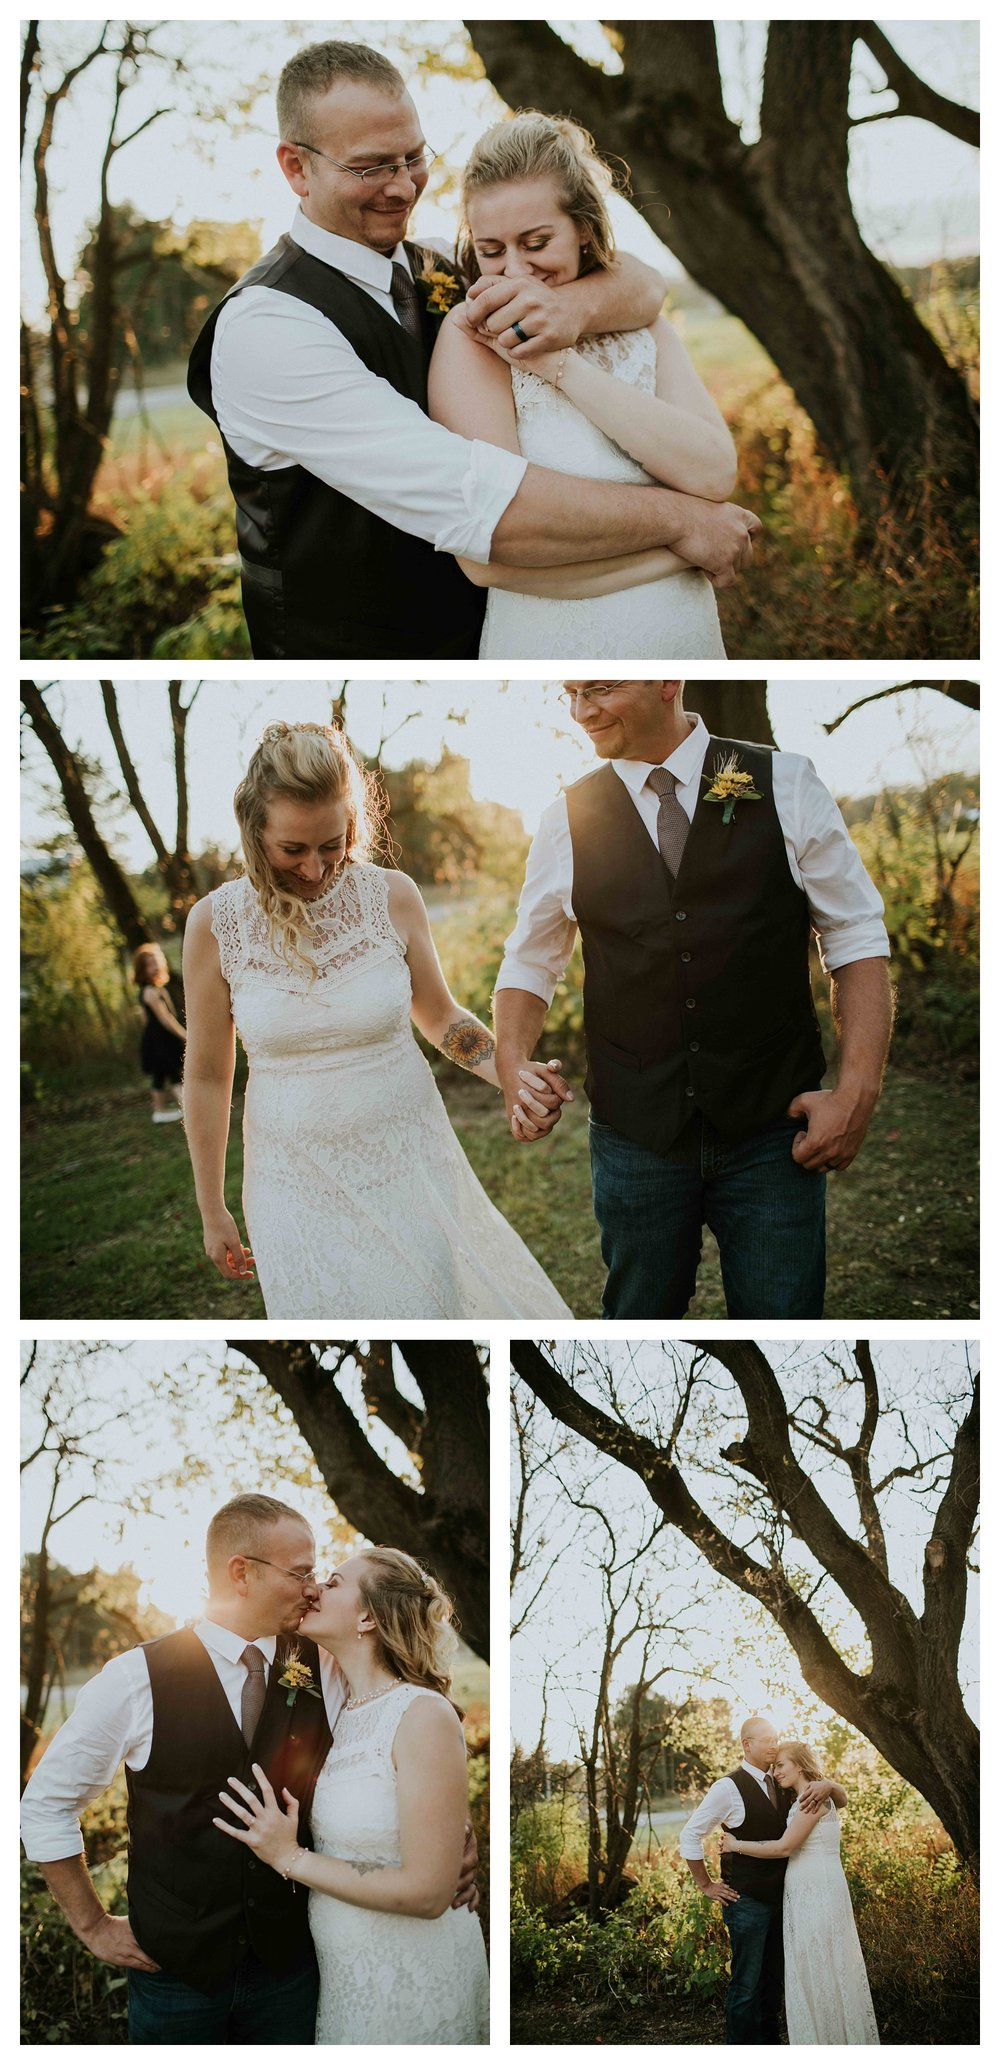 clauson barn wedding photographer chloe ann photography madison wisconsin photographer_0019.jpg